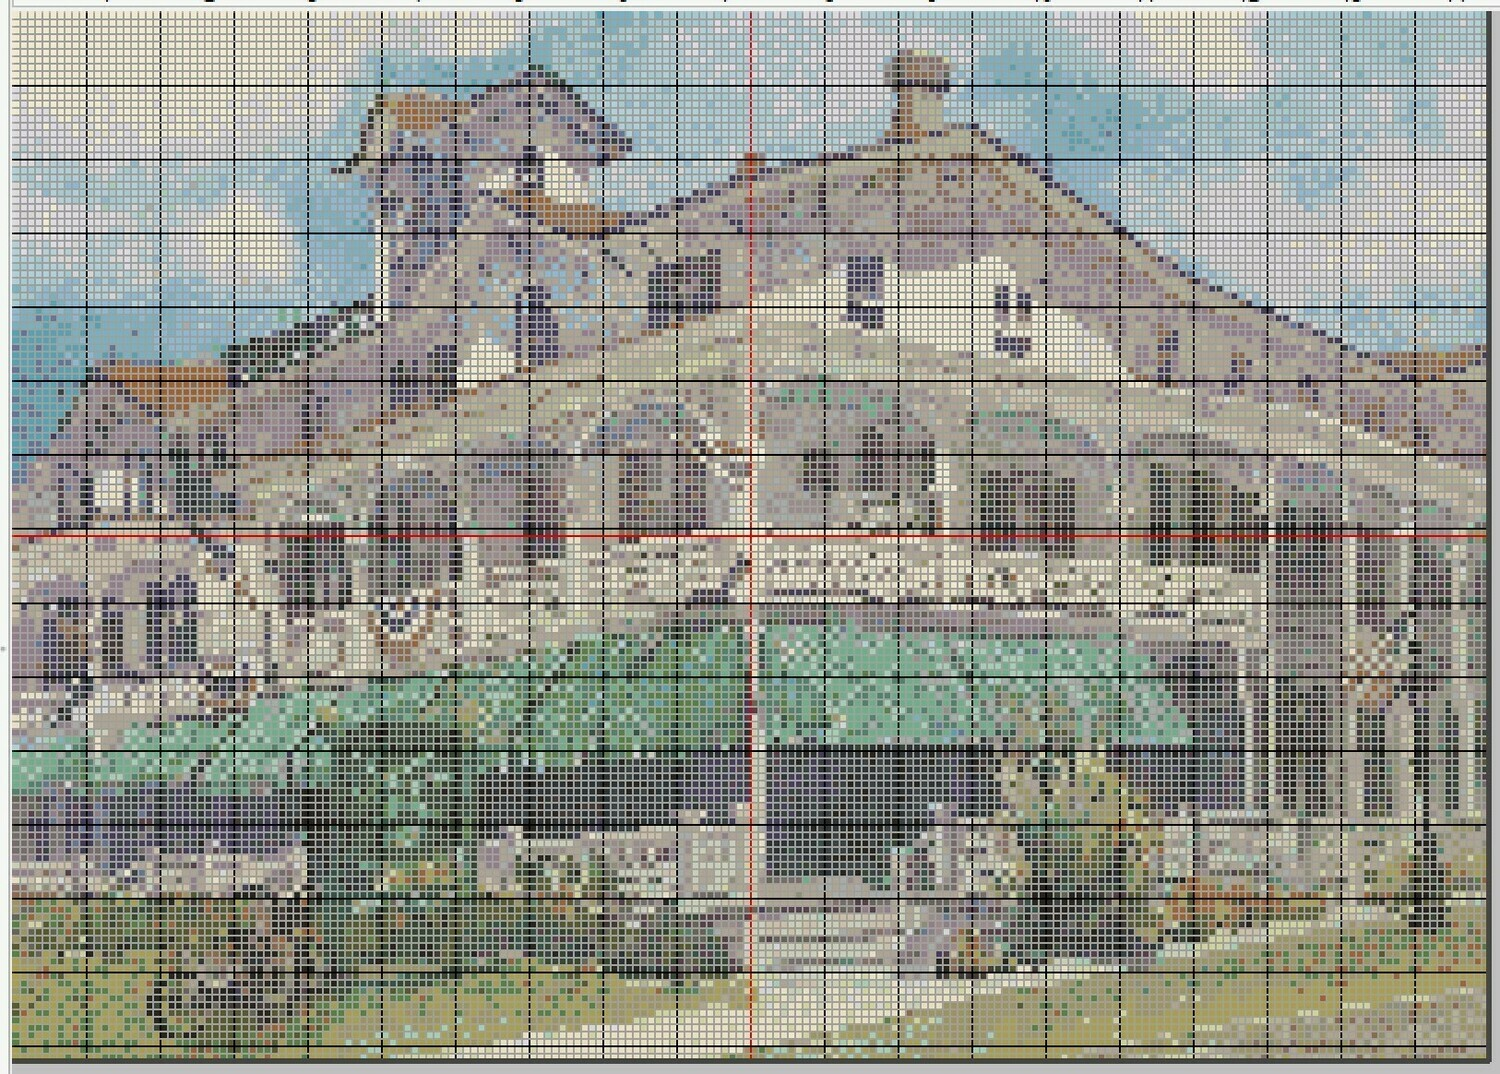 Beautiful Cape May NJ Chalfonte Hotel Cross Stitch - Pattern Only - Instant Digital Download